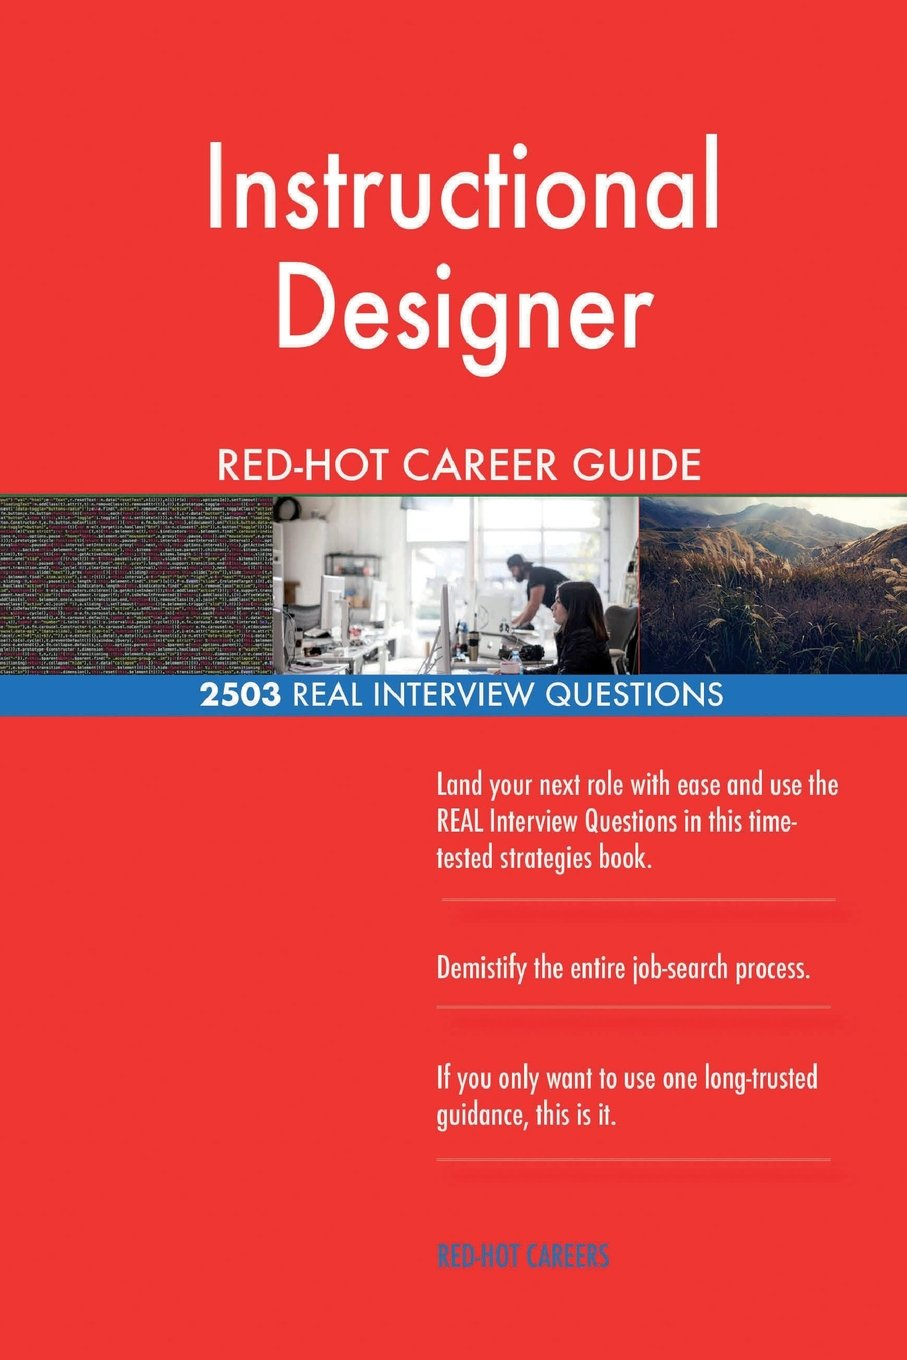 Instructional Designer Red Hot Career Guide 2503 Real Interview Questions Careers Red Hot 9781719158947 Amazon Com Books